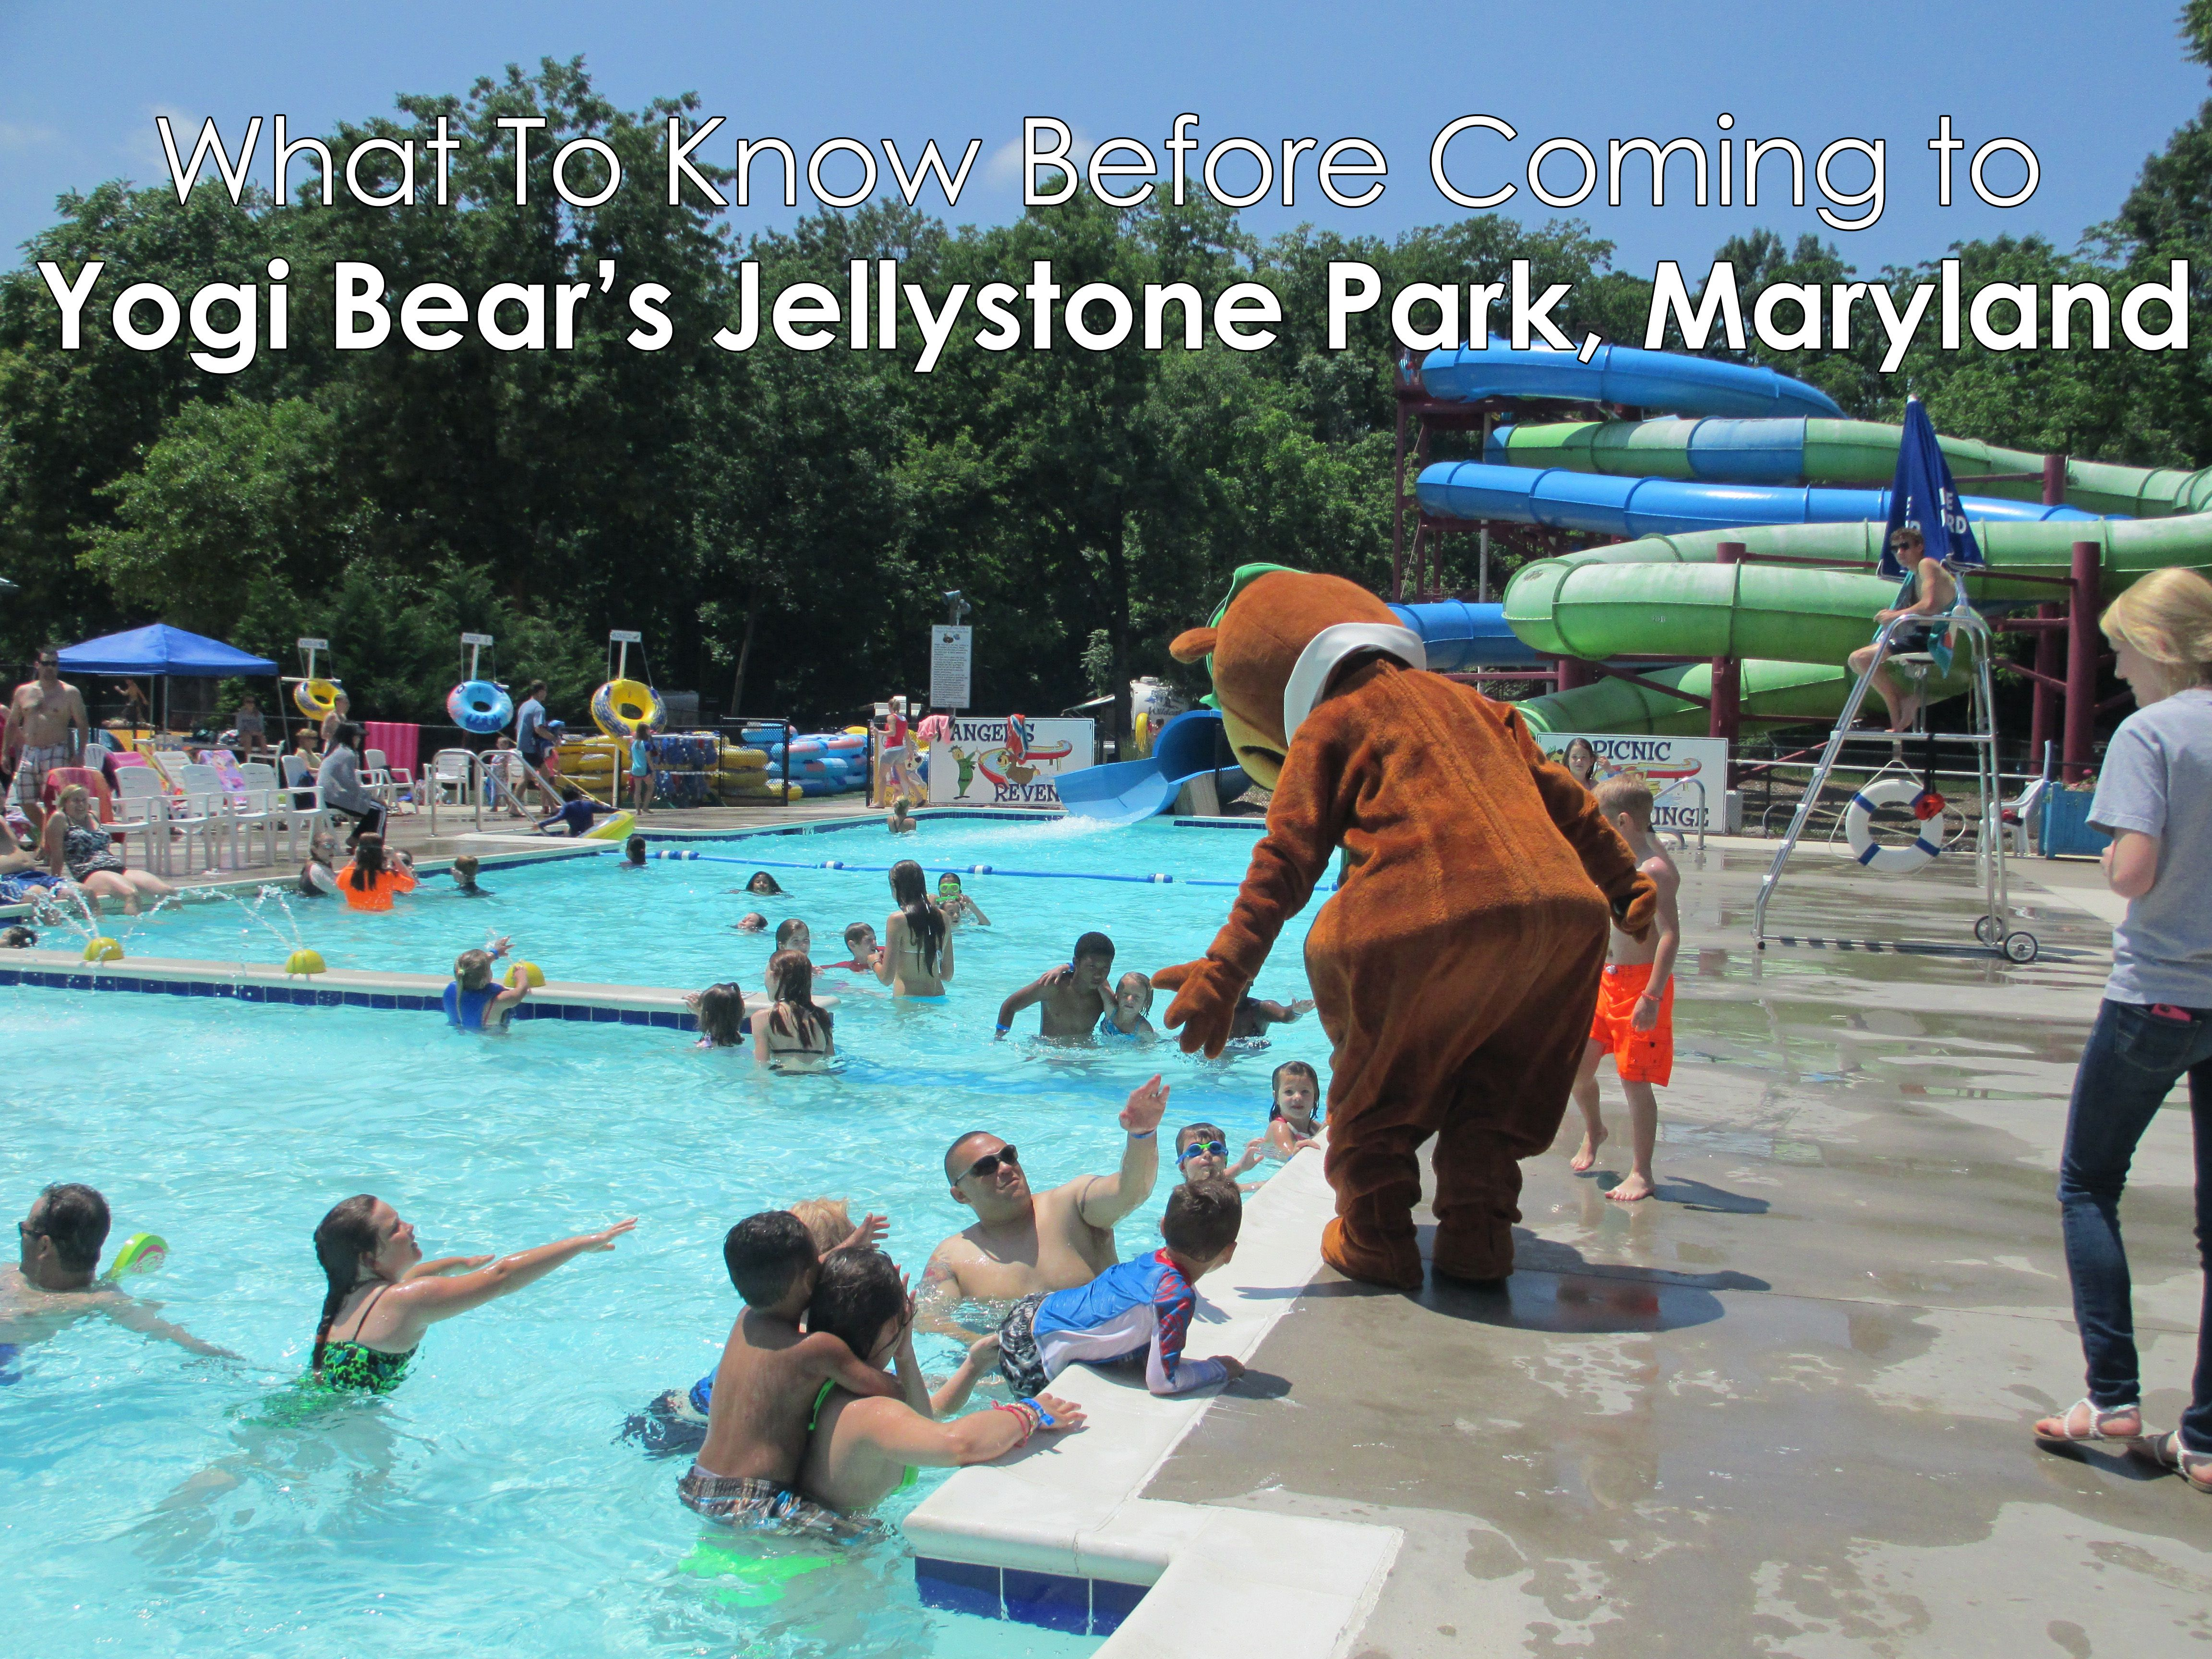 What To Know Before Coming to Yogi Bear's Jellystone Park, Maryland